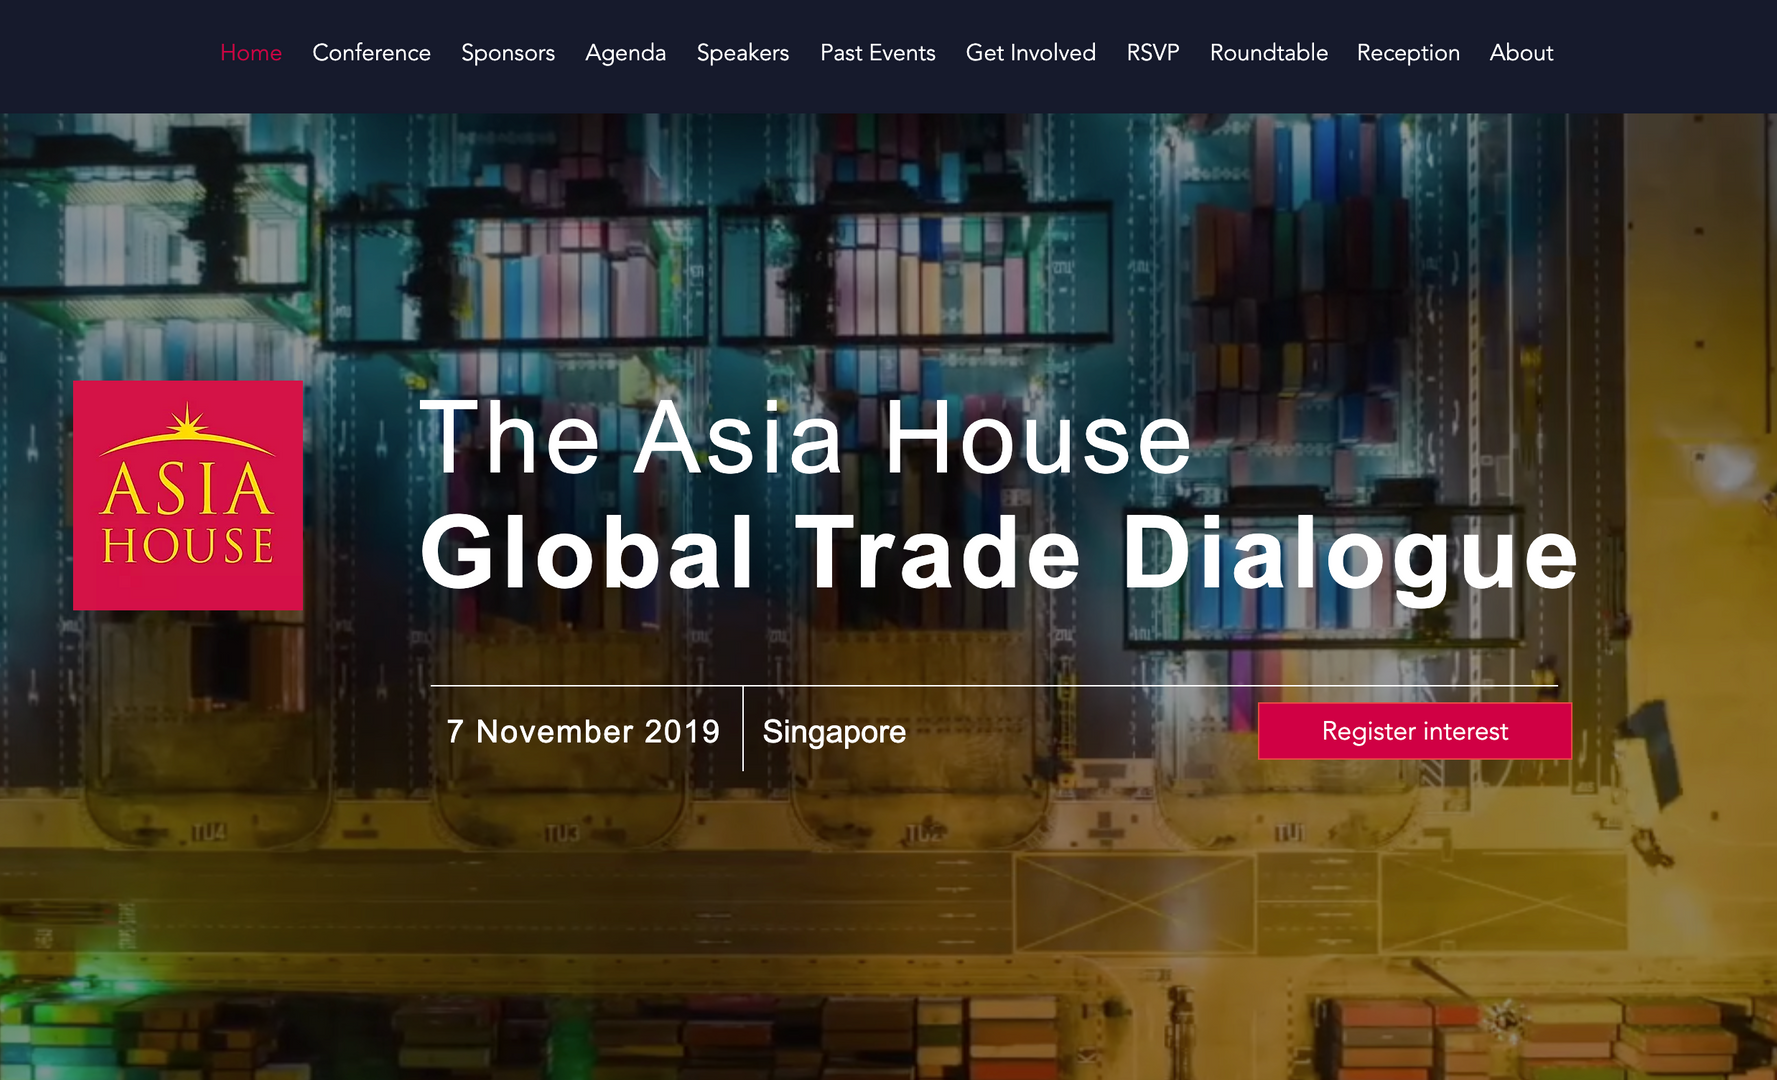 The Asia House Global Trade Dialogue